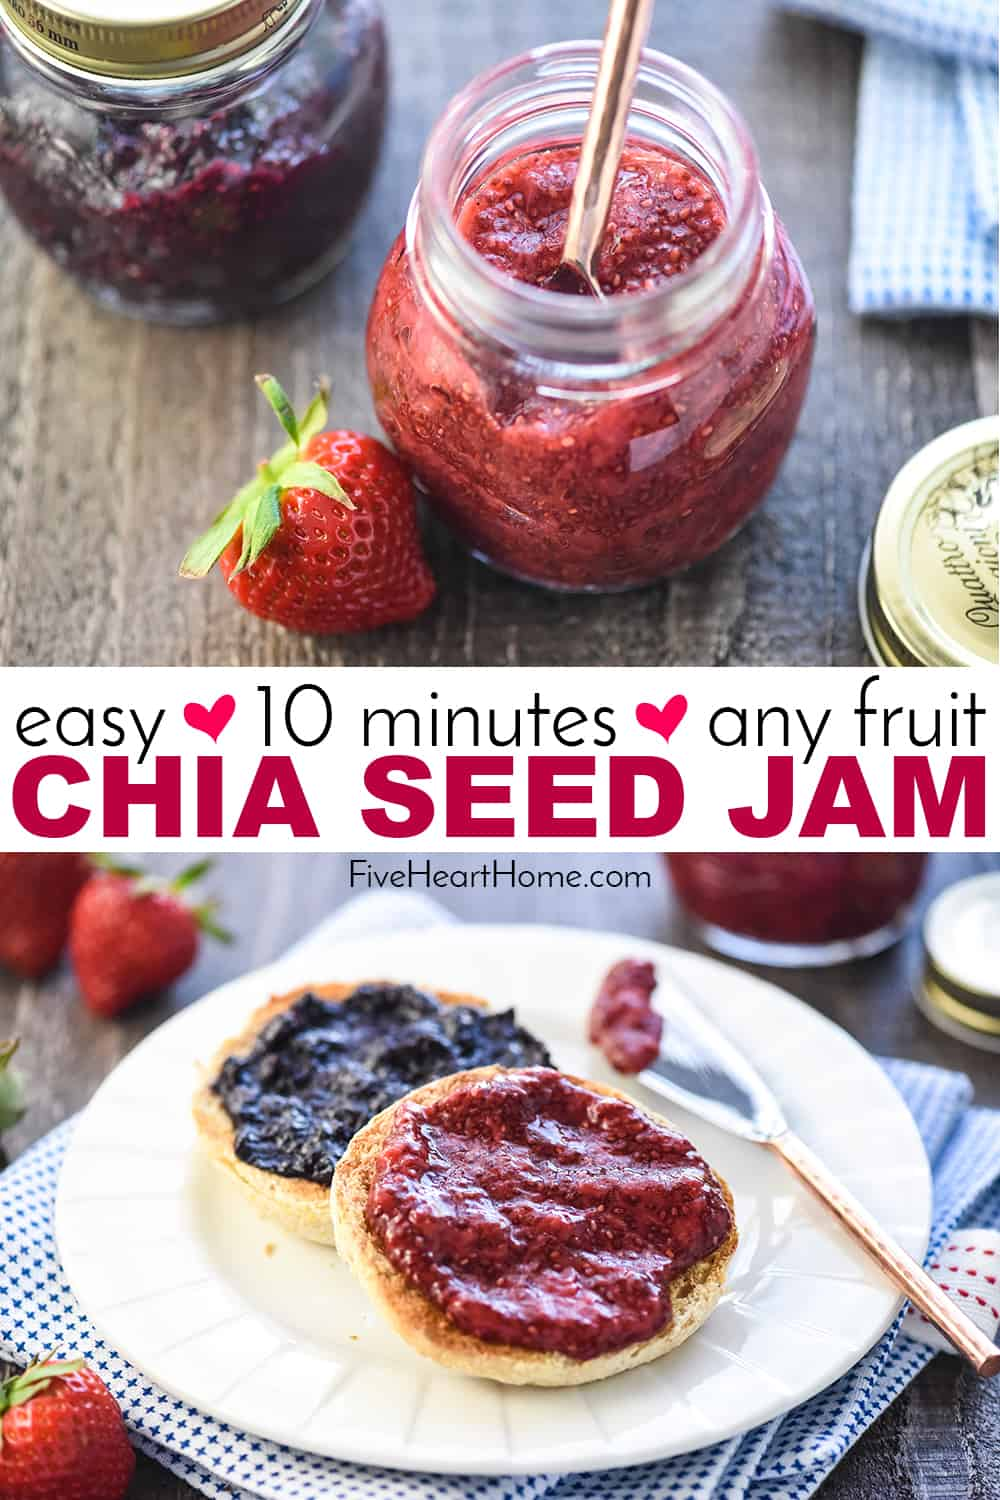 Chia Seed Jam in jars and on English muffin, collage with text